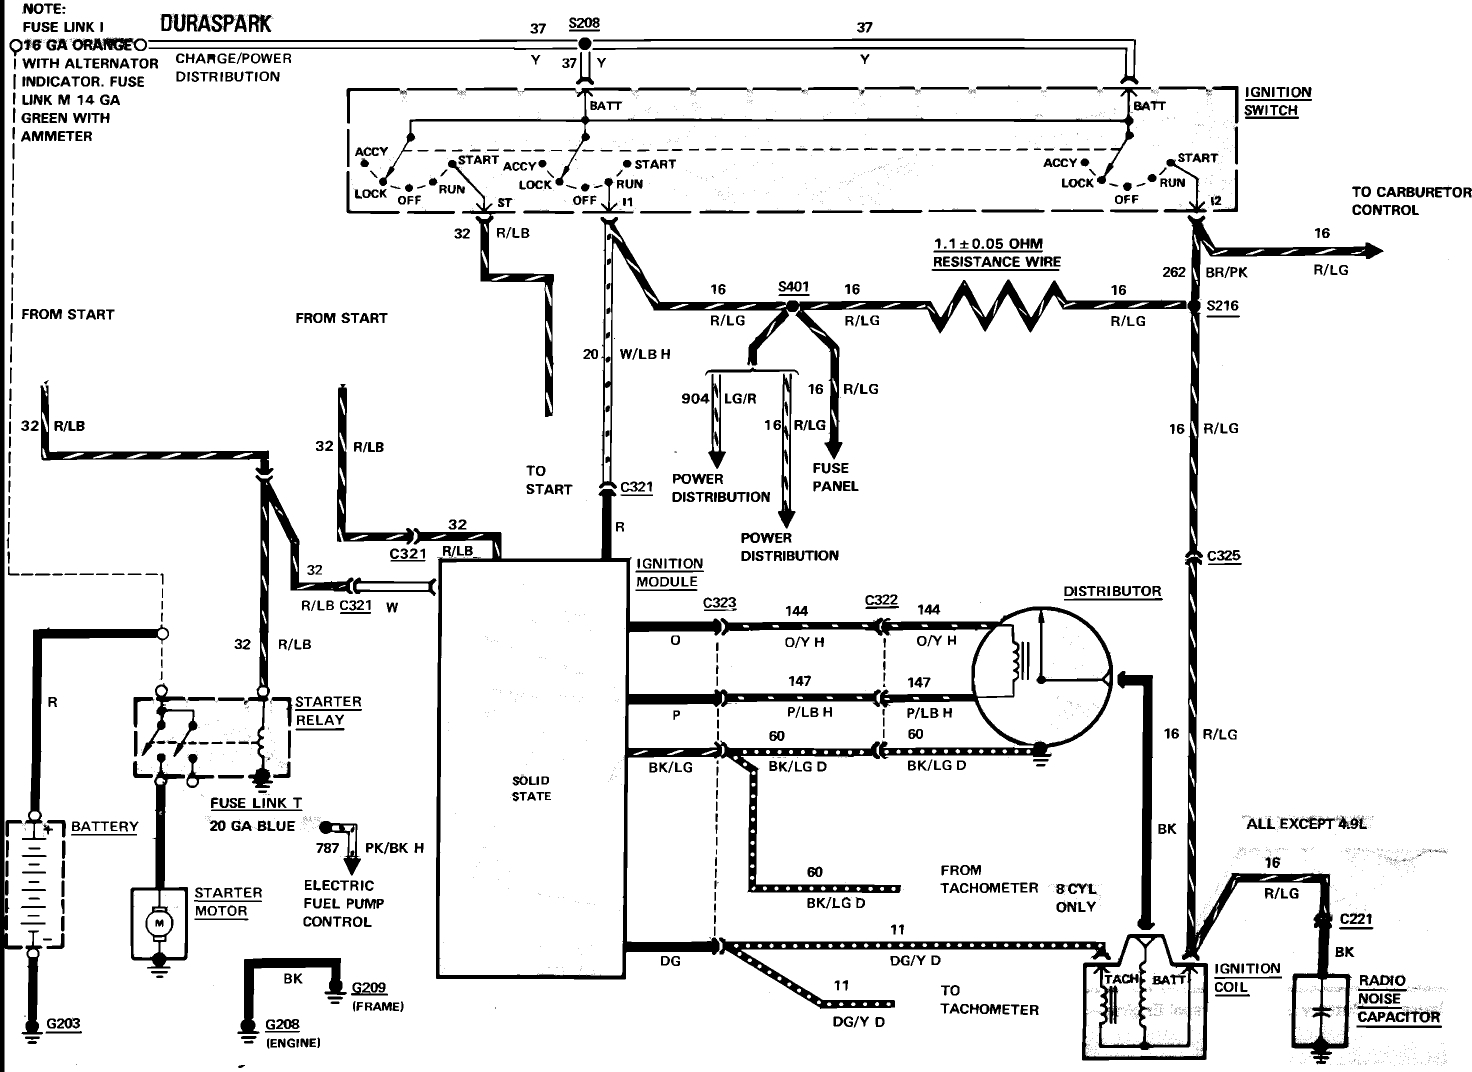 1966 ford mustang wiring diagram on cable wiring harness diagram